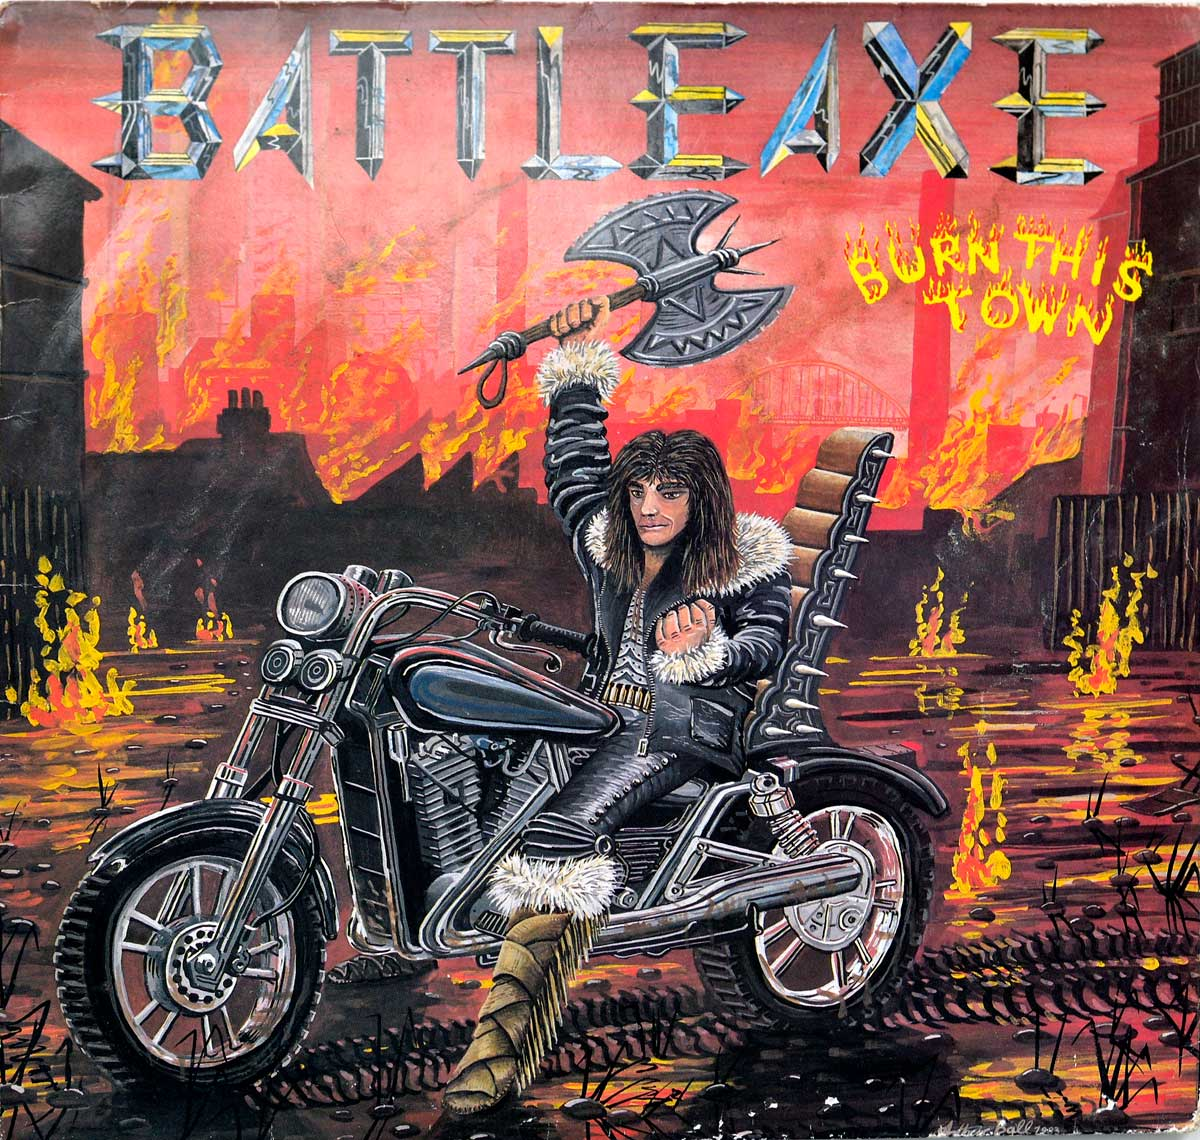 large photo of the album front cover of: BATTLE-AXE BATTLEAXE Burn This Town